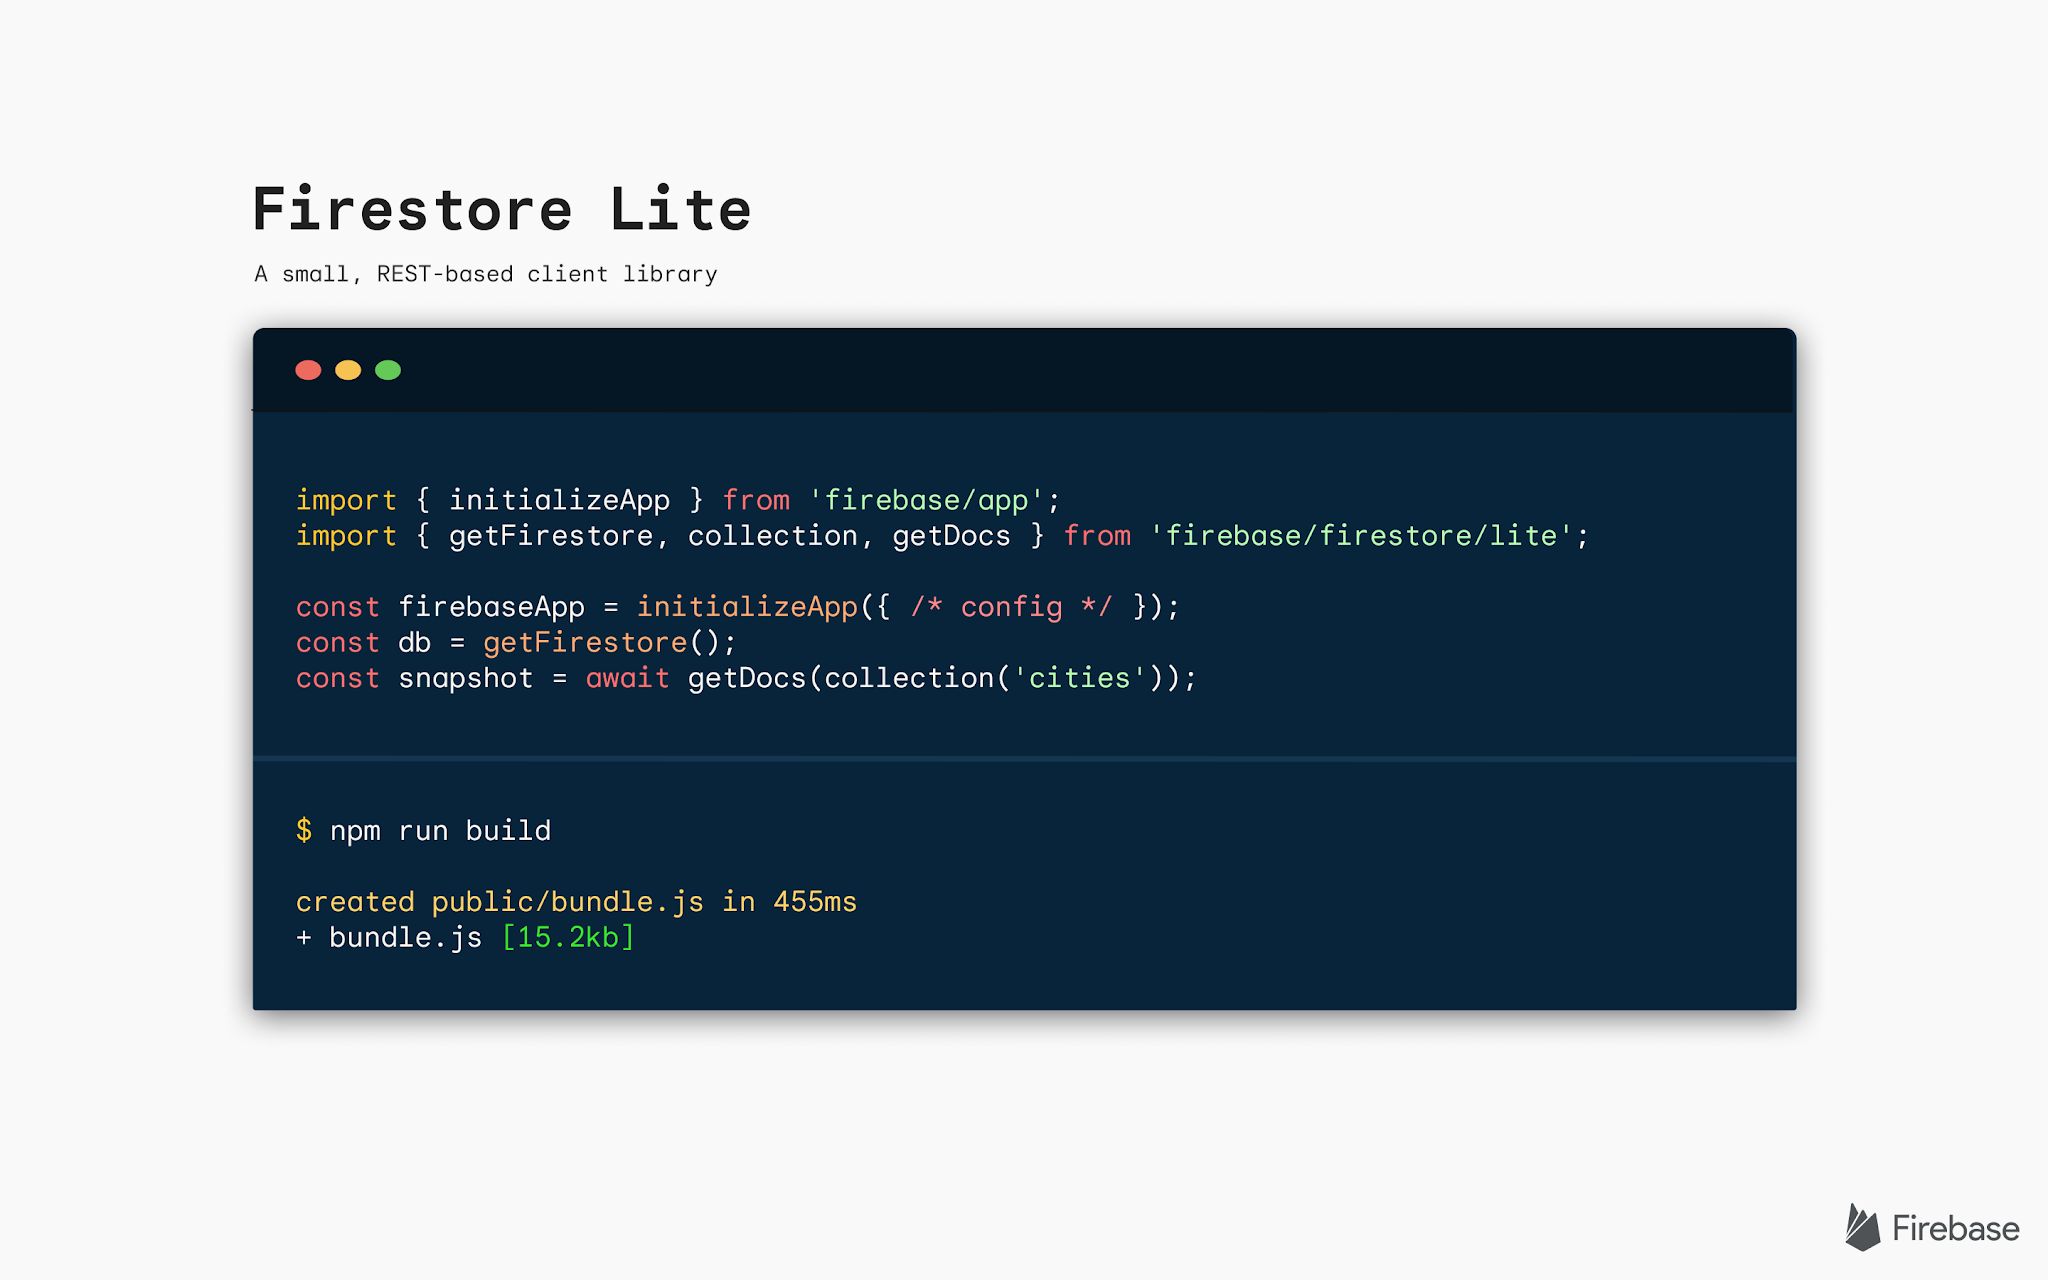 Image of code snippet with text saying Firestore Lite